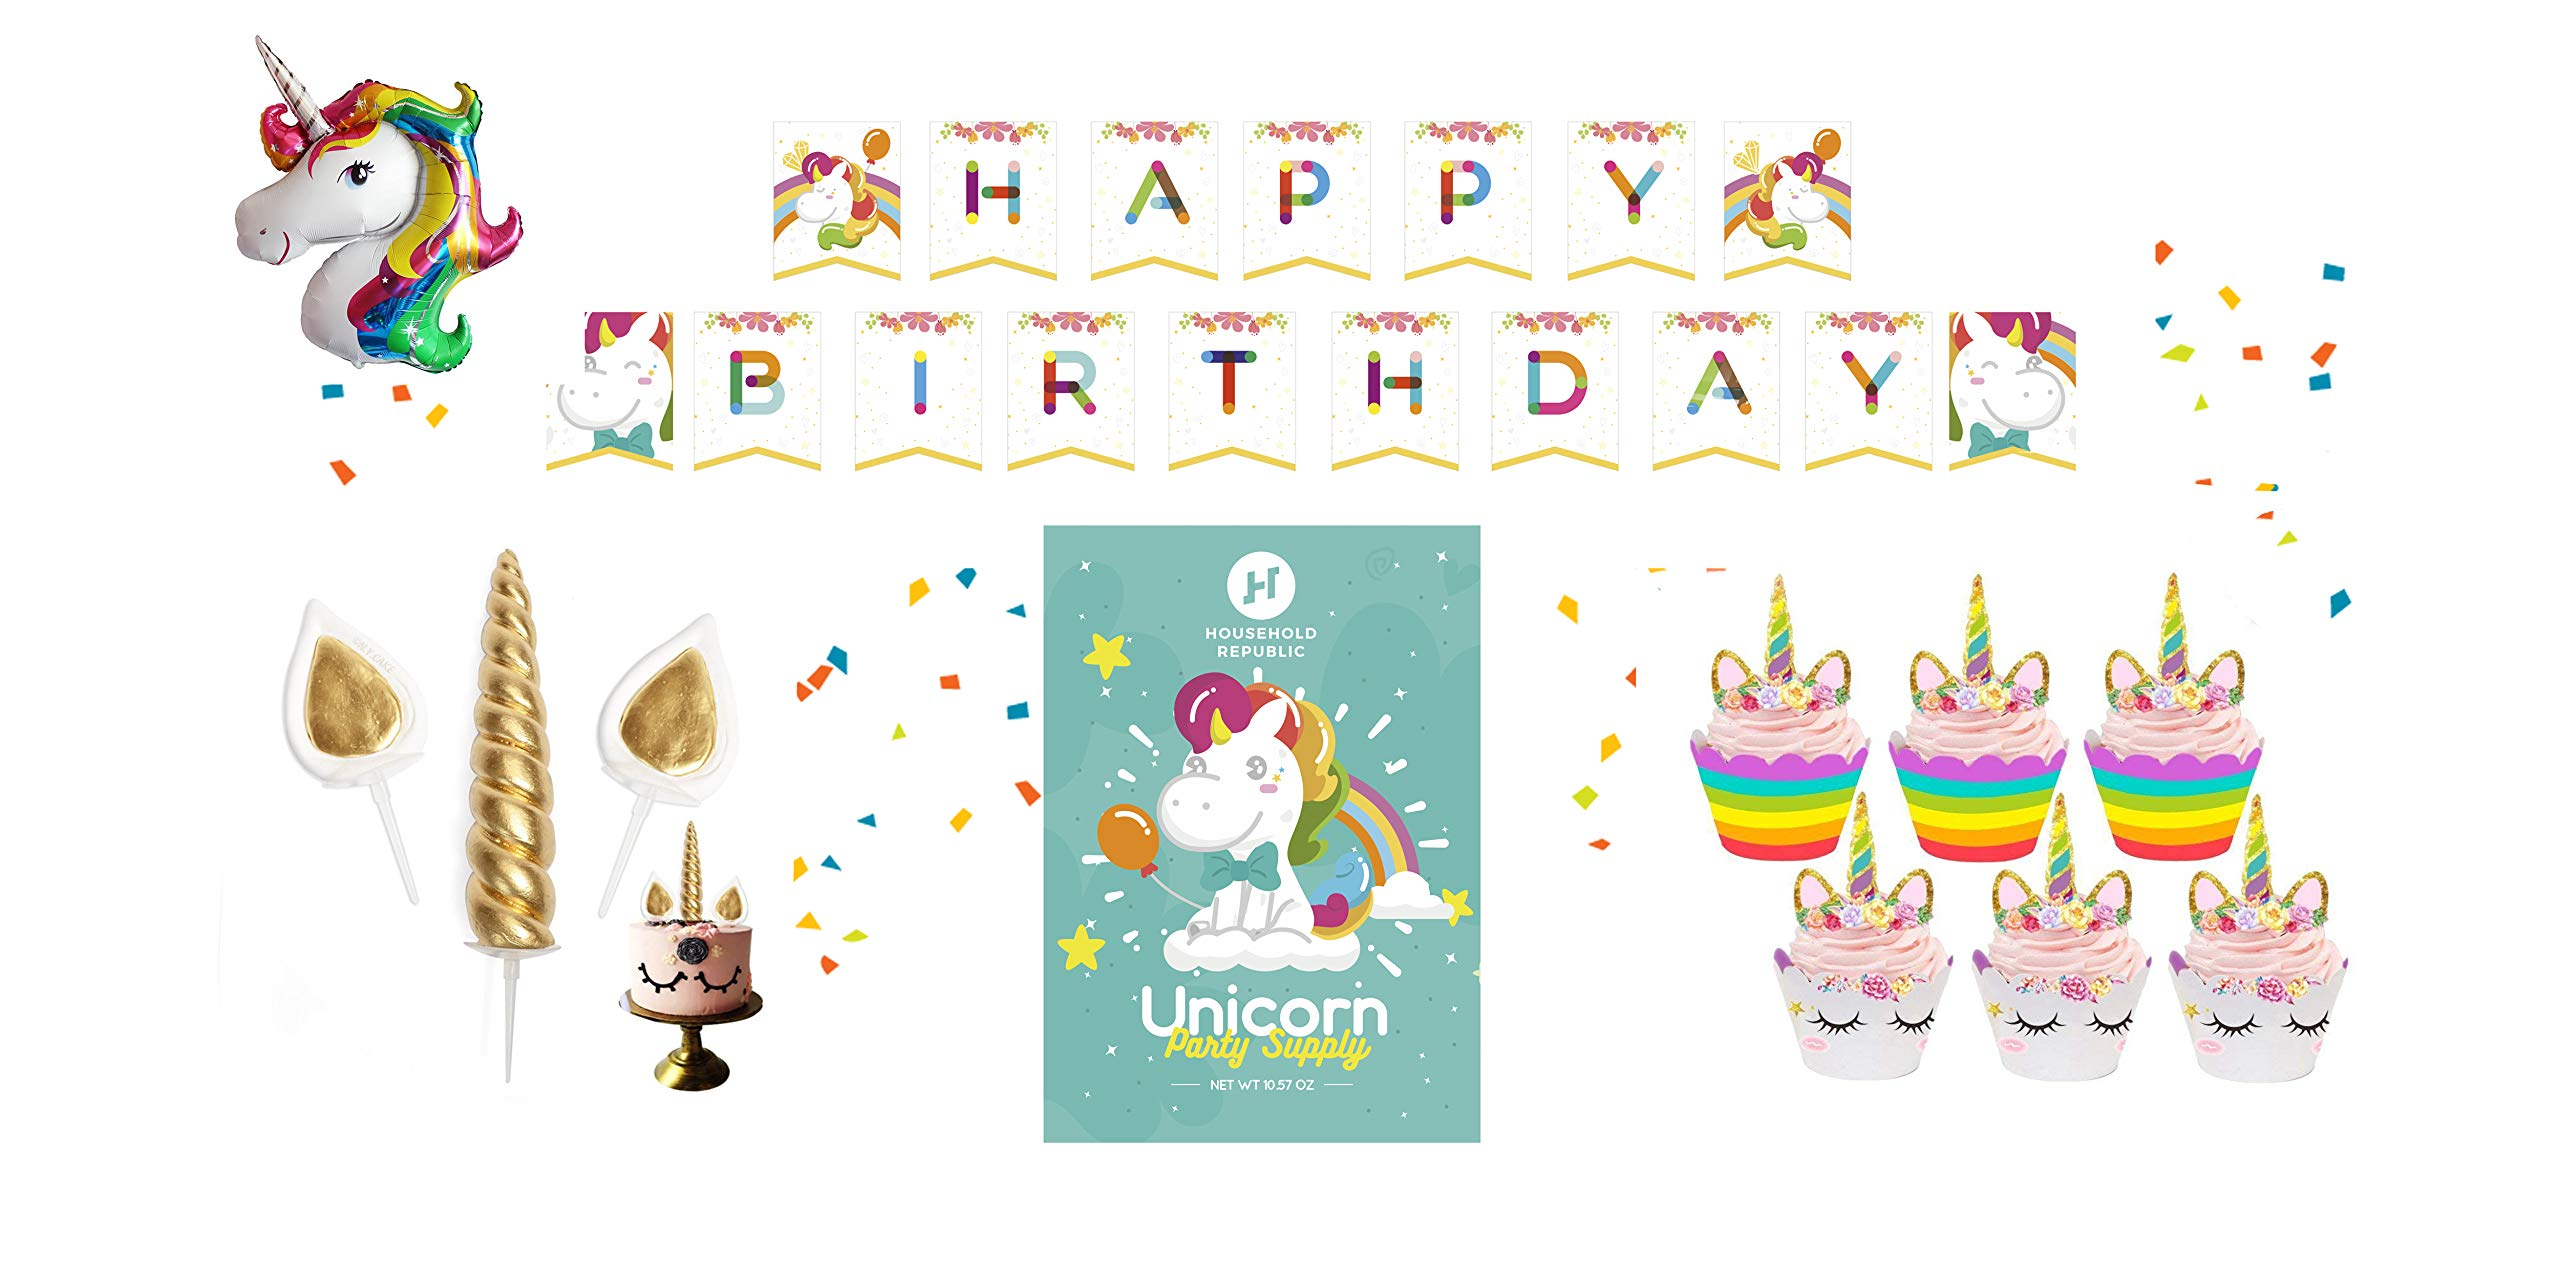 Household Republic 15pc Happy Birthday Unicorn Rainbow Party Decorations Kit – Colorful Decor Supplies, Accessories for Kids Parties – Cute Eyelash Cake Topper, Cupcake Wraps, Bday Banner, Balloon